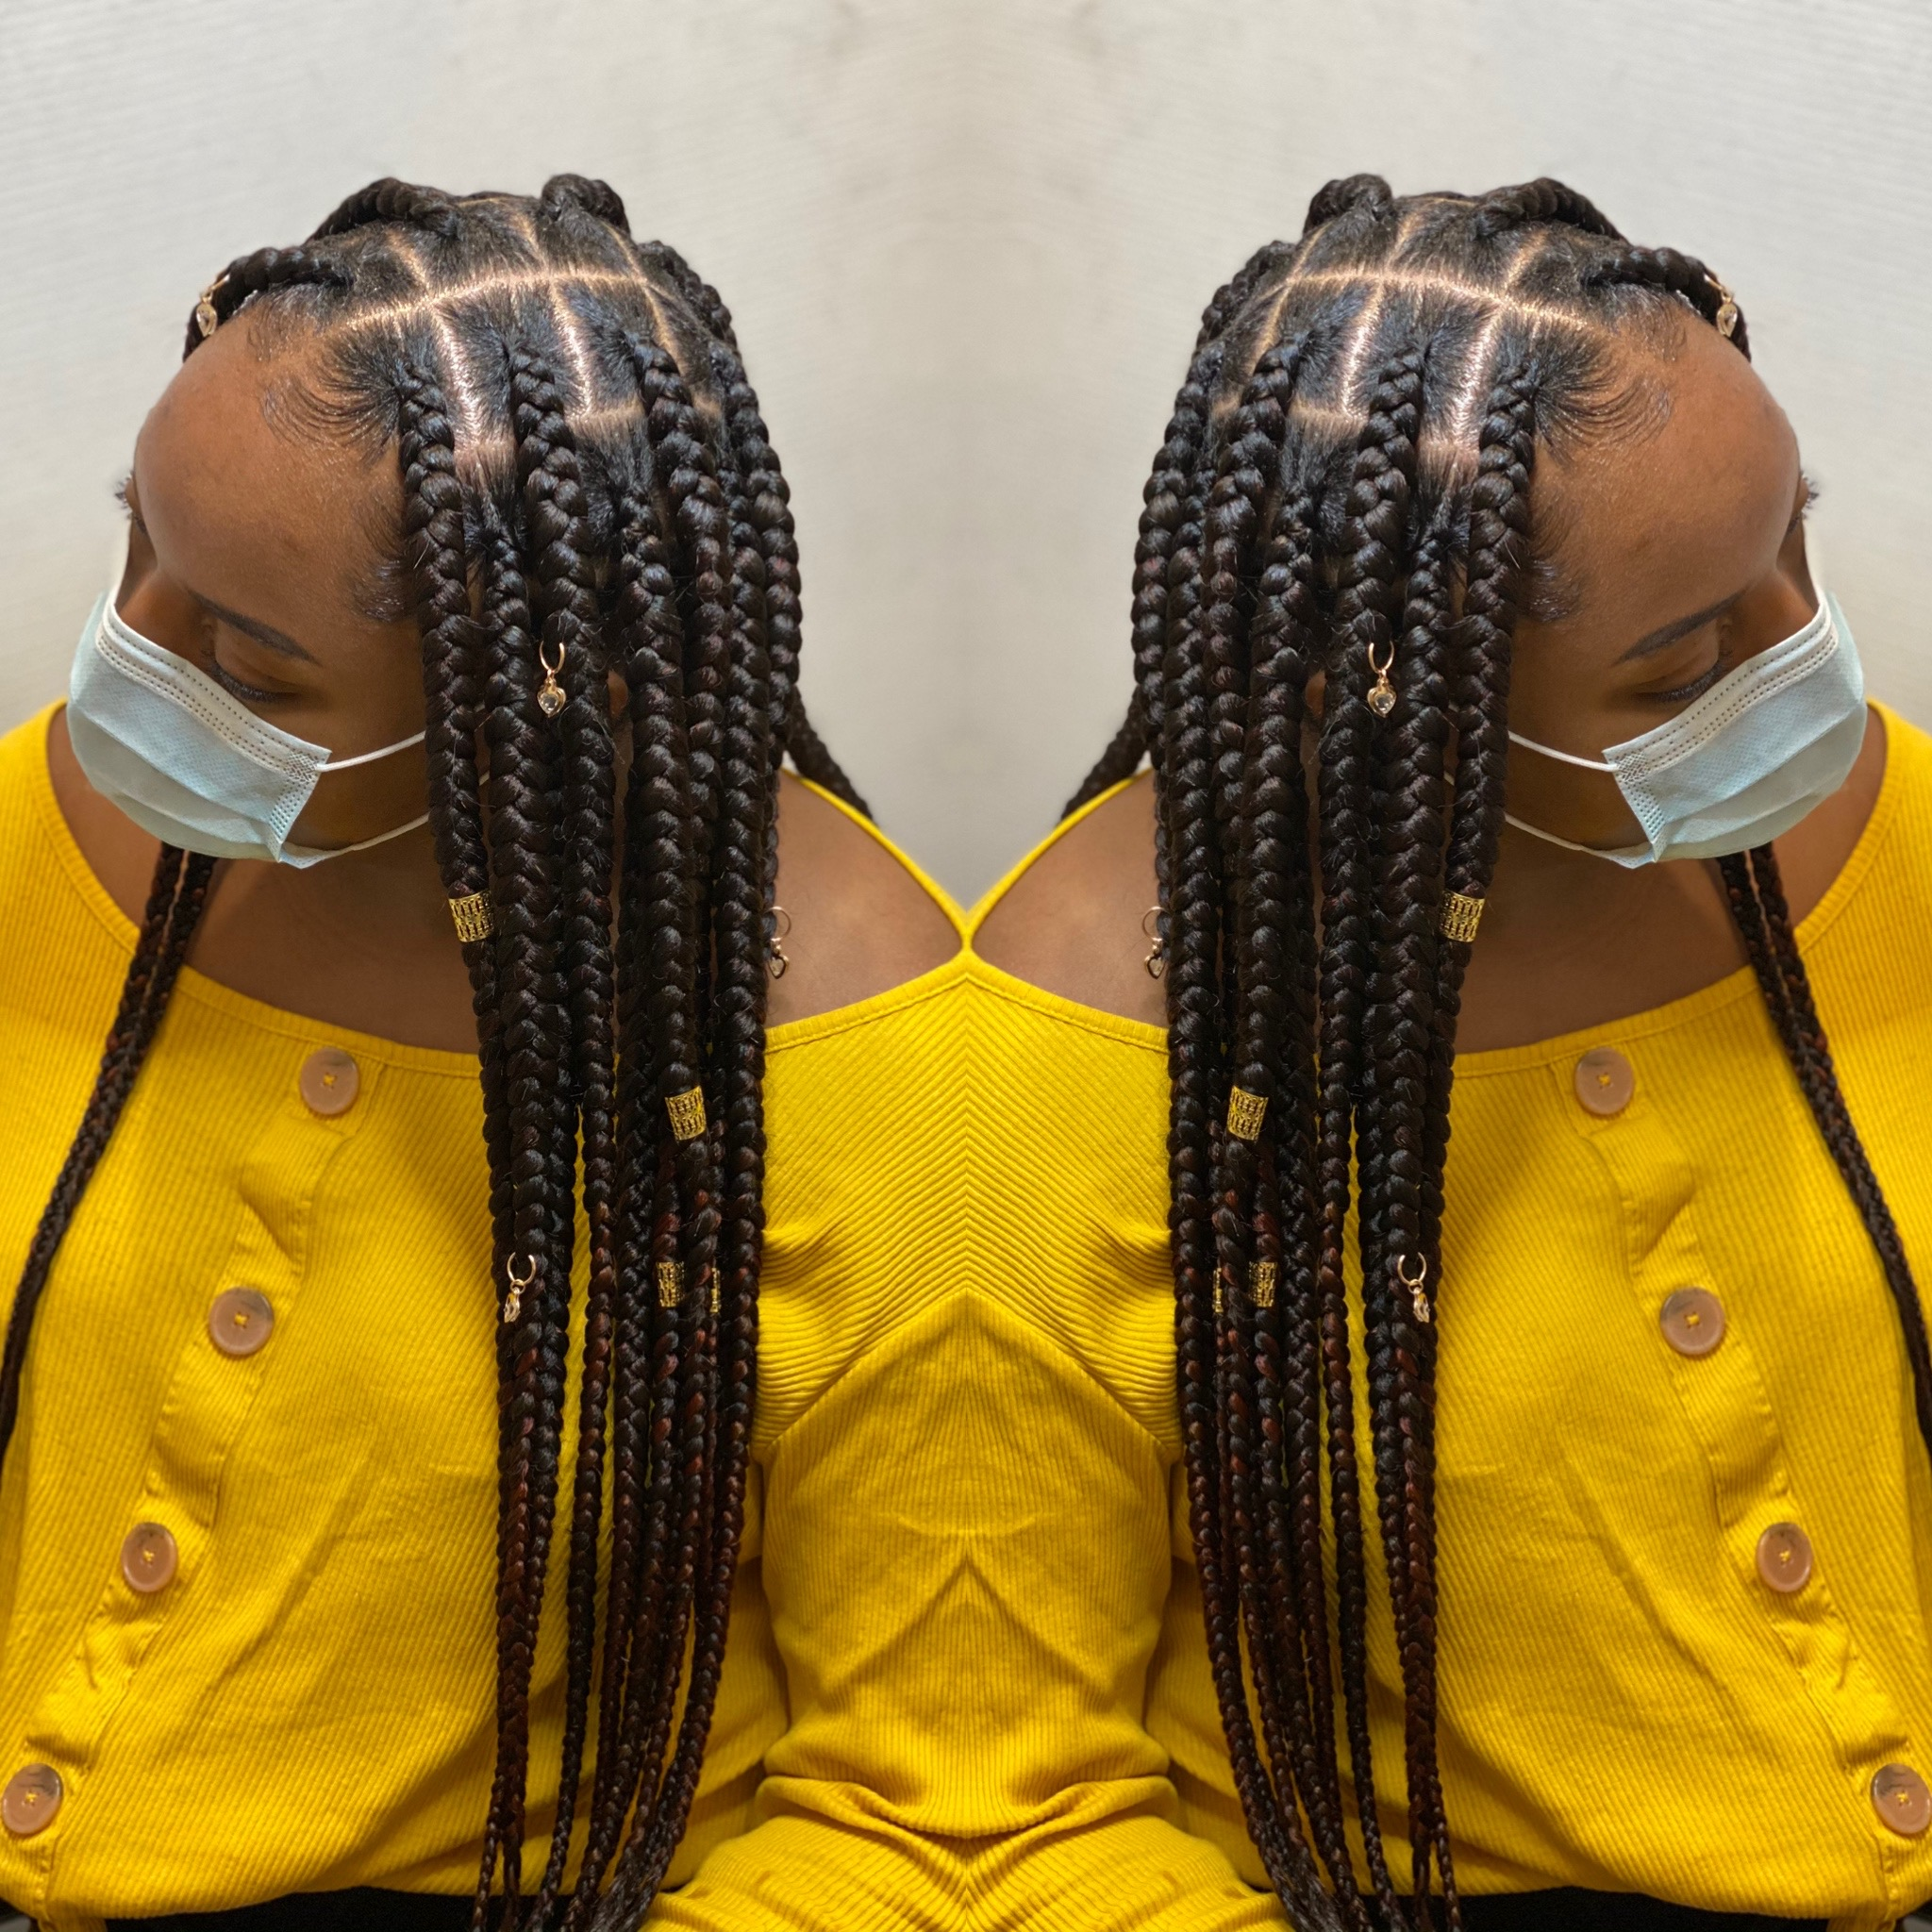 salon de coiffure afro tresse tresses box braids crochet braids vanilles tissages paris 75 77 78 91 92 93 94 95 HGKXPUOU